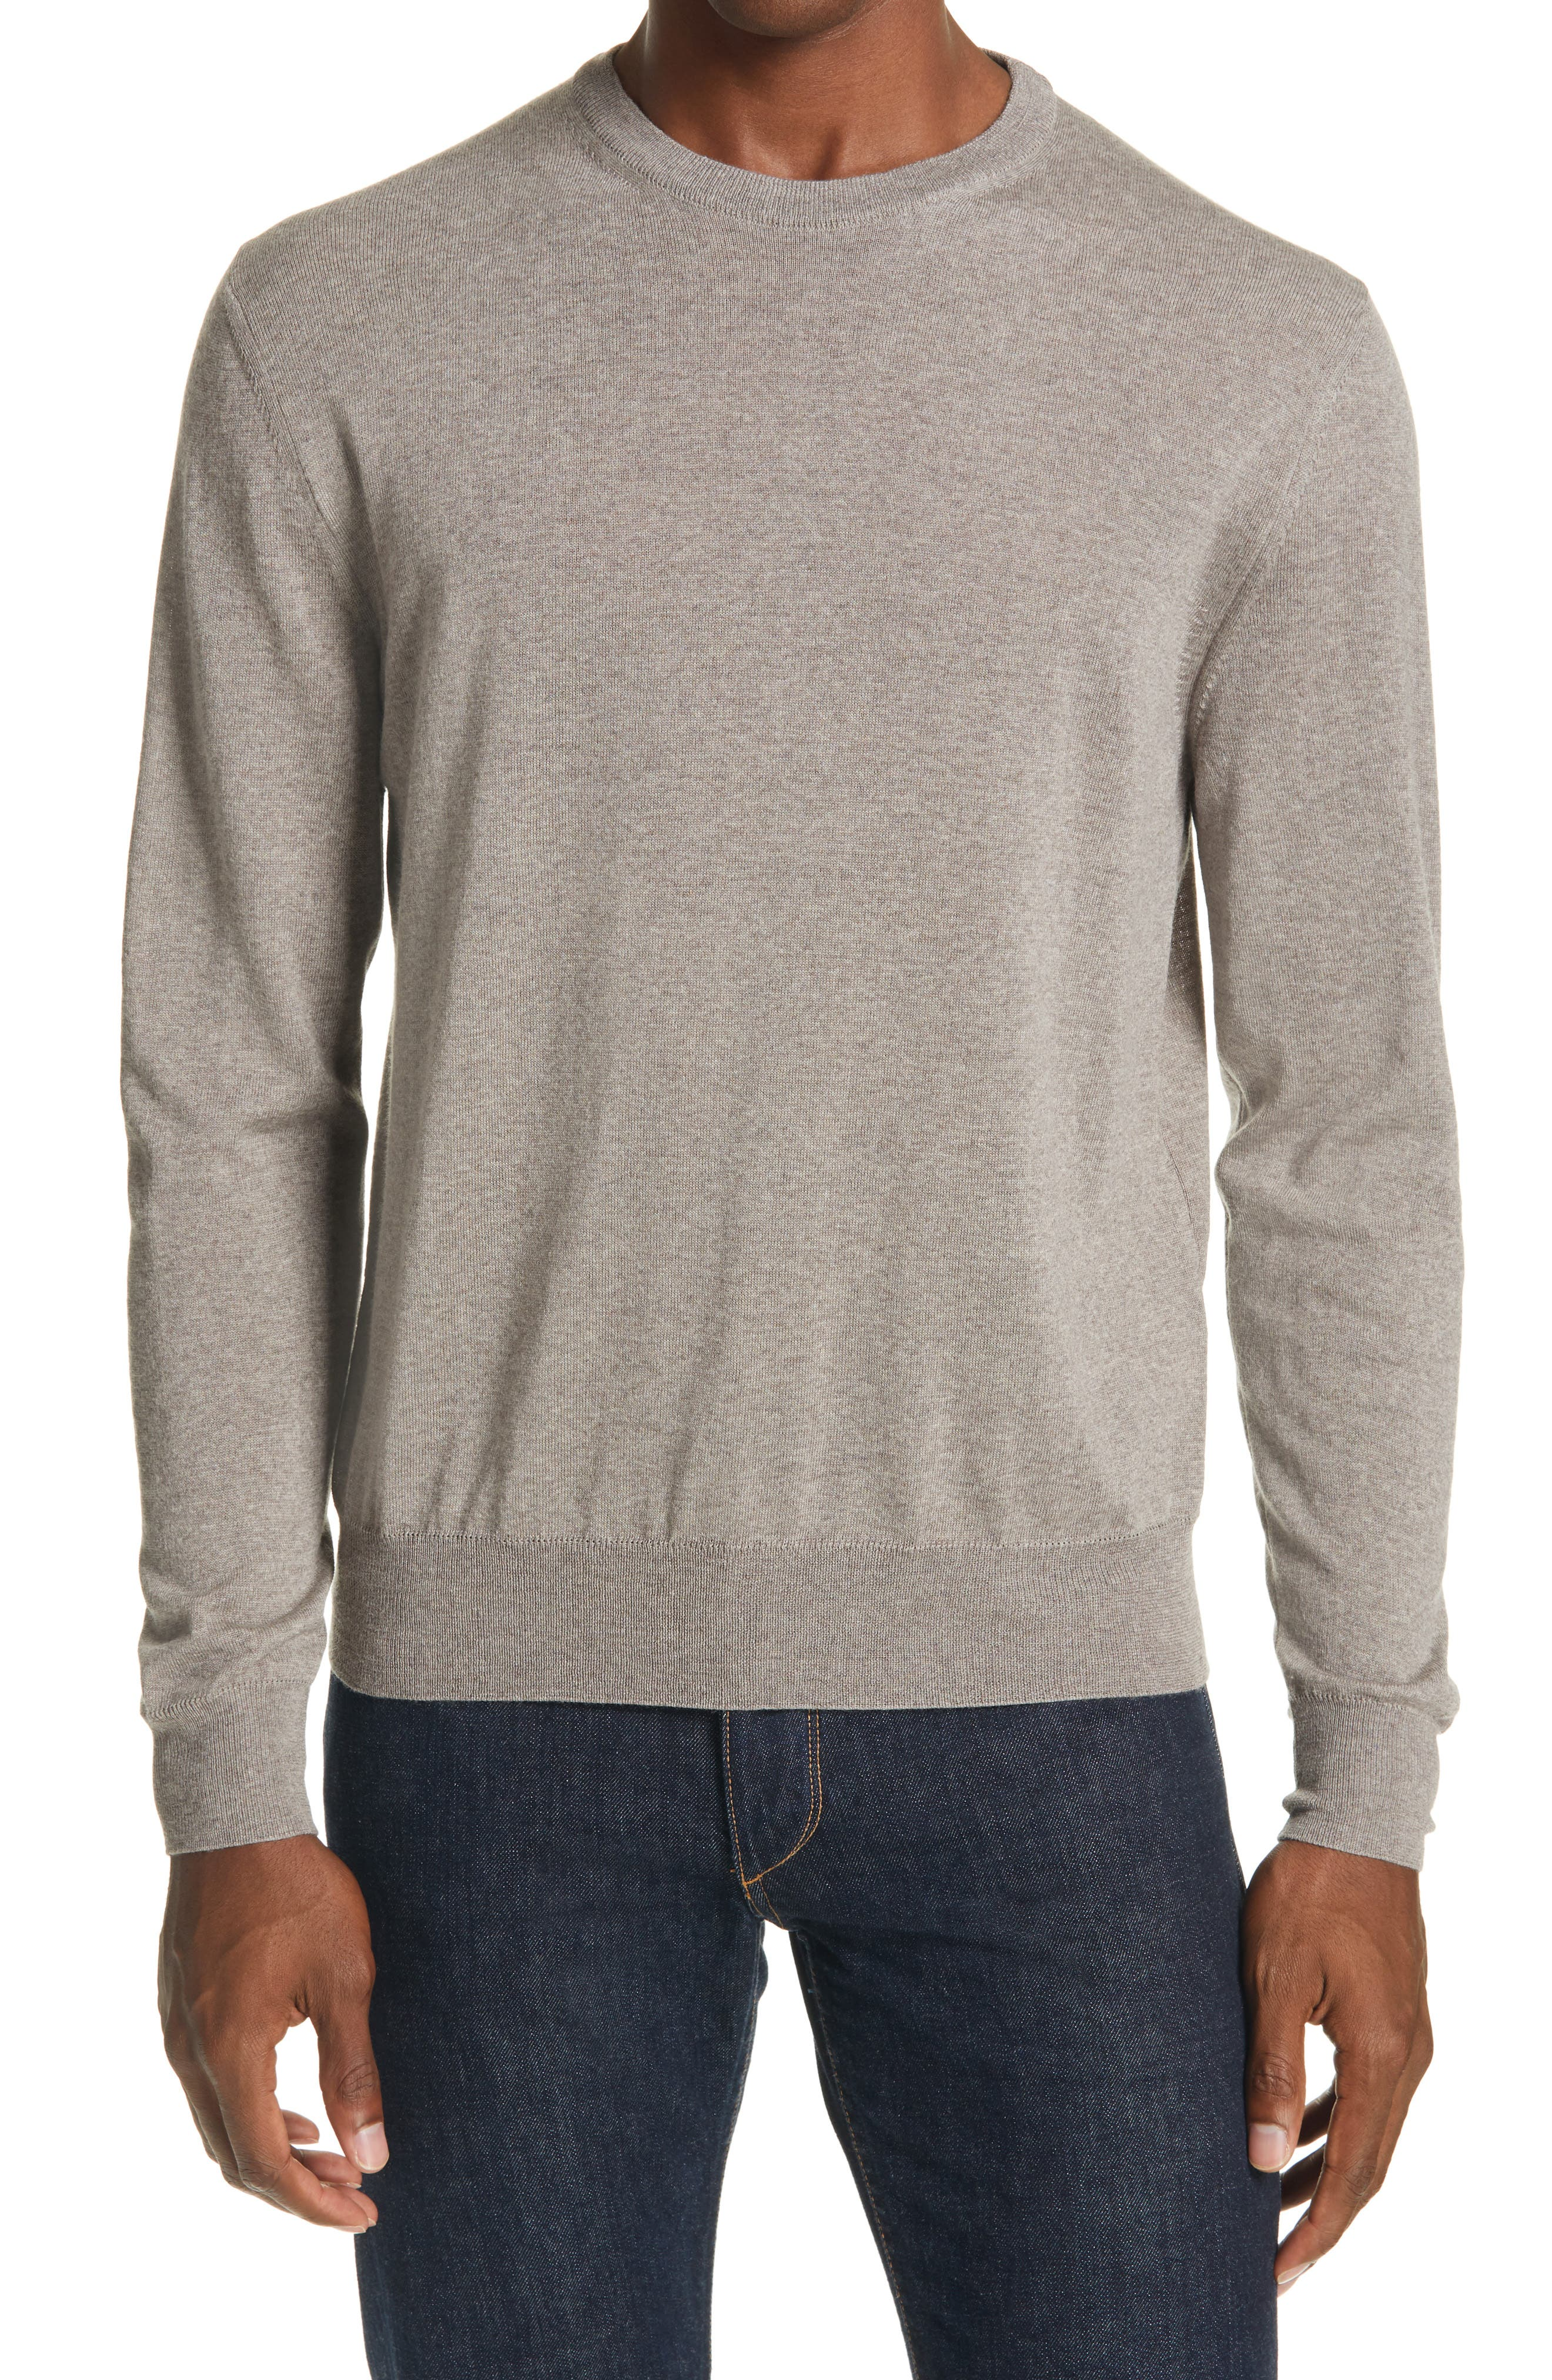 Soft, lightweight wool brings easy comfort to a sweater done in a heathered neutral with a fit that\\\'s perfect for layering and handsome all by itself. Style Name: Canali Crewneck Wool Sweater. Style Number: 6099137. Available in stores.